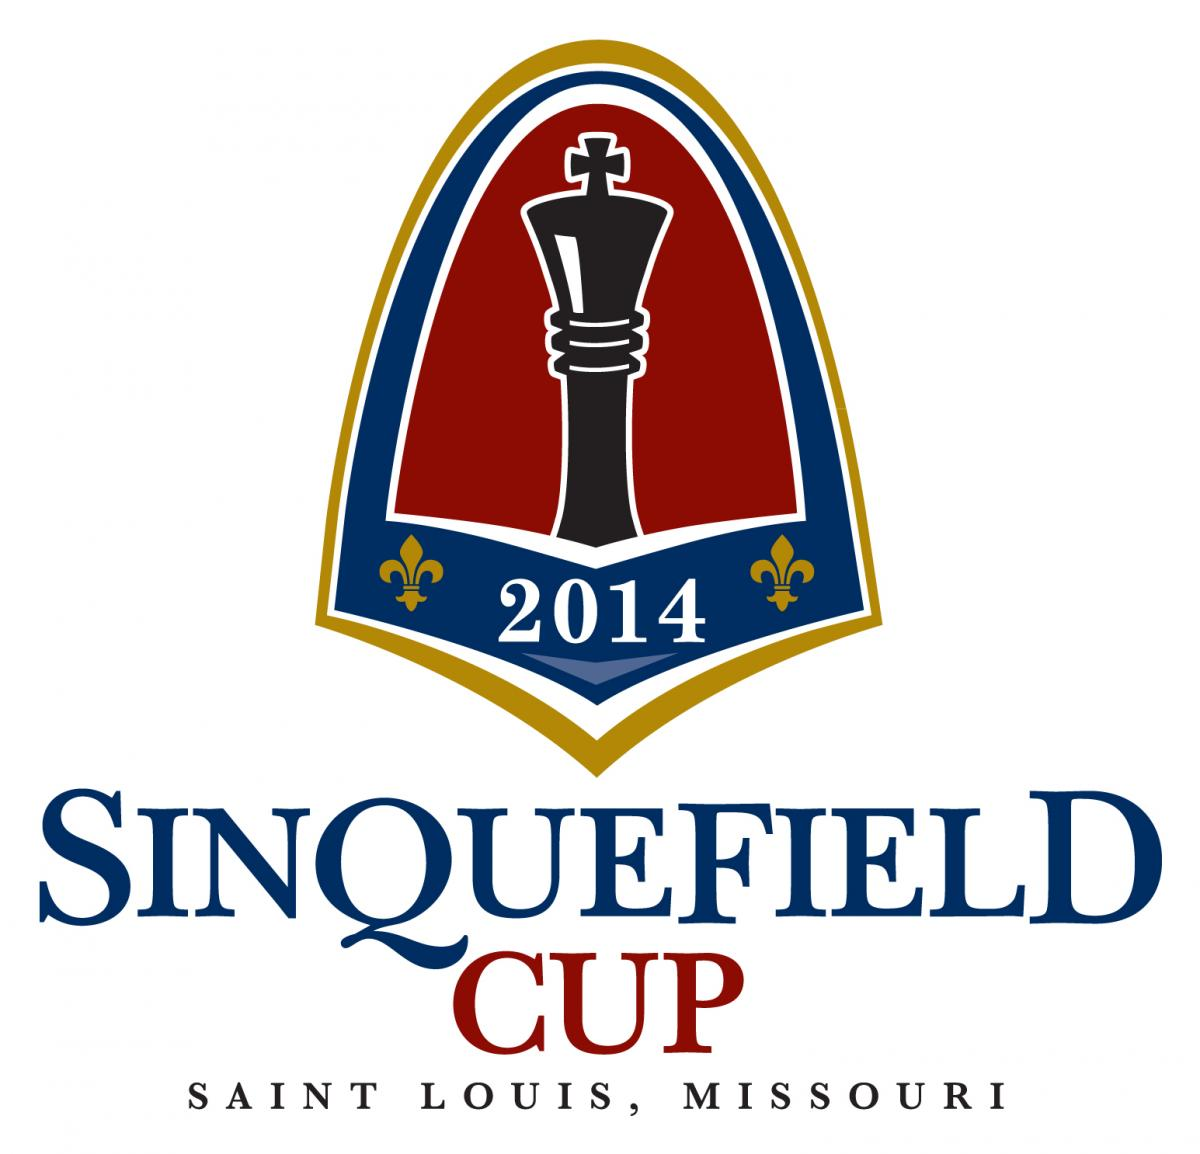 Sinq Cup logo with space